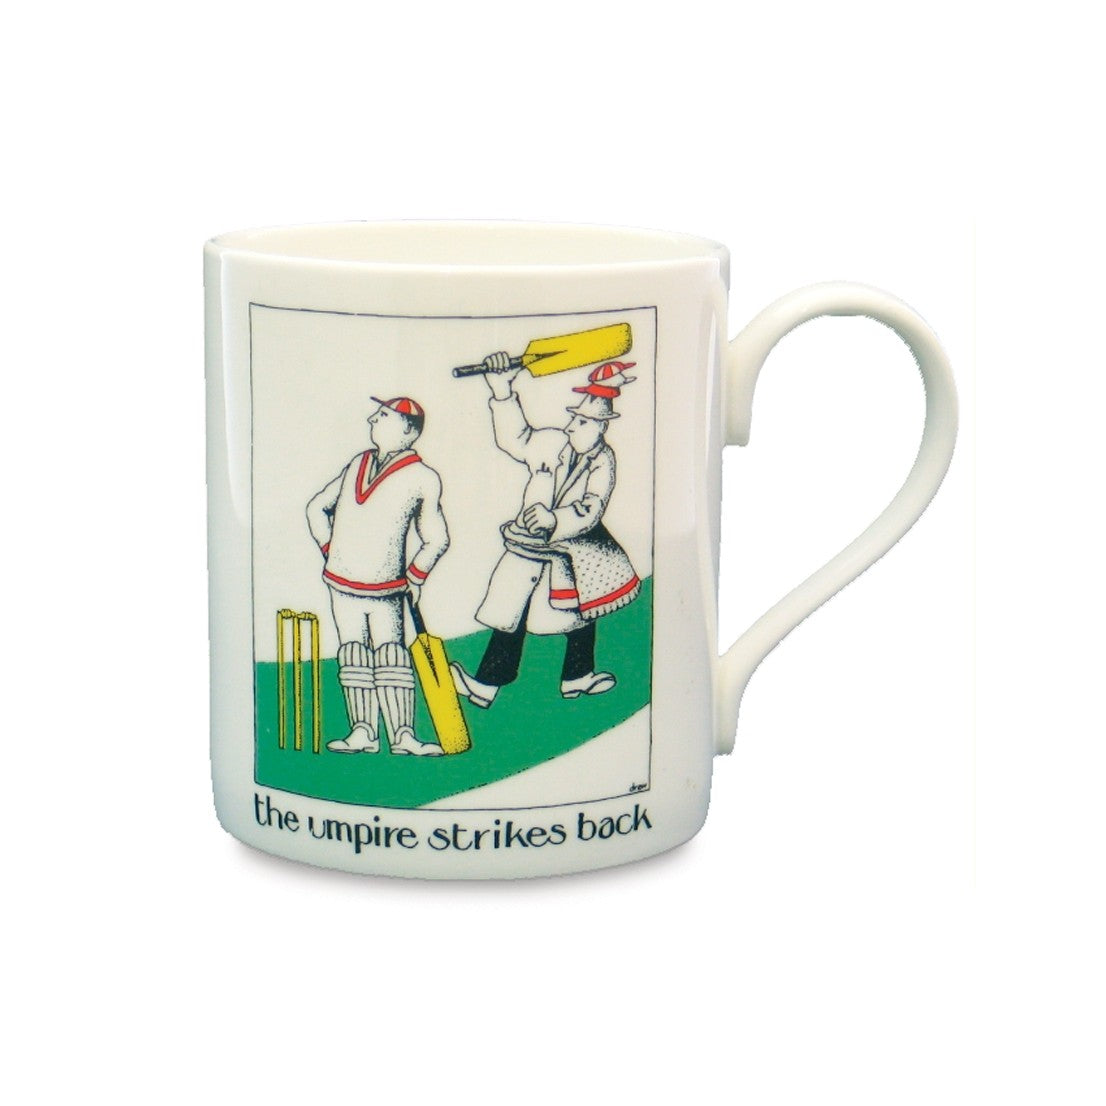 Umpire Strikes Back China Mug